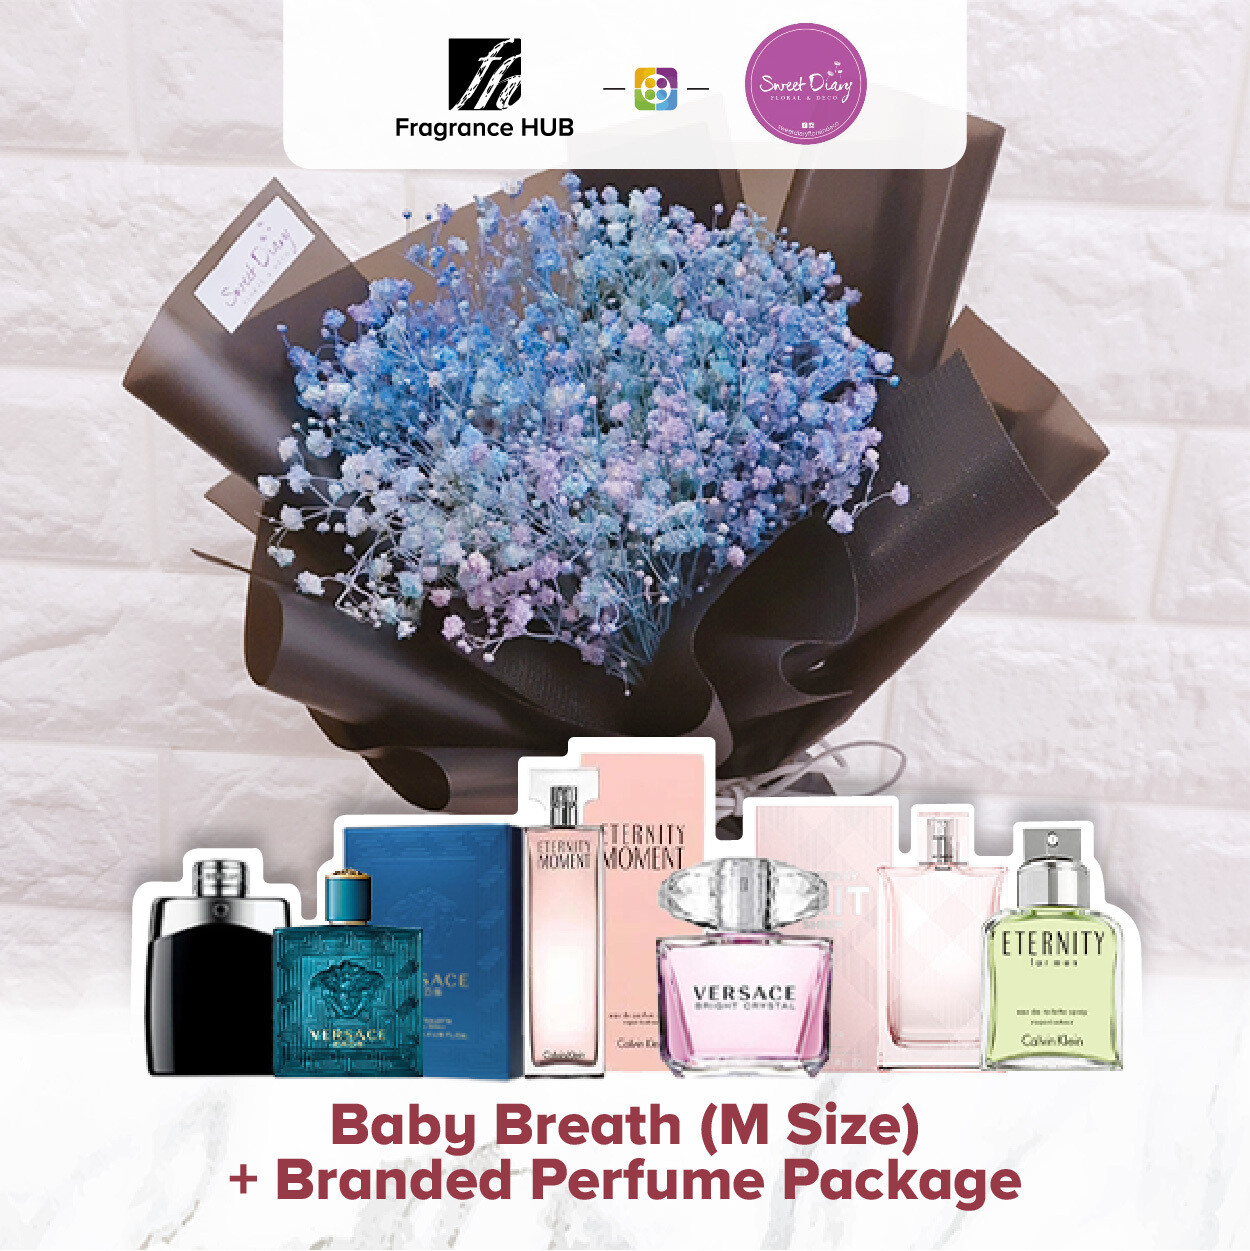 Baby Breath (M Size) + Fragrance Hub Branded Perfume (By: Sweet Diary from Puchong)